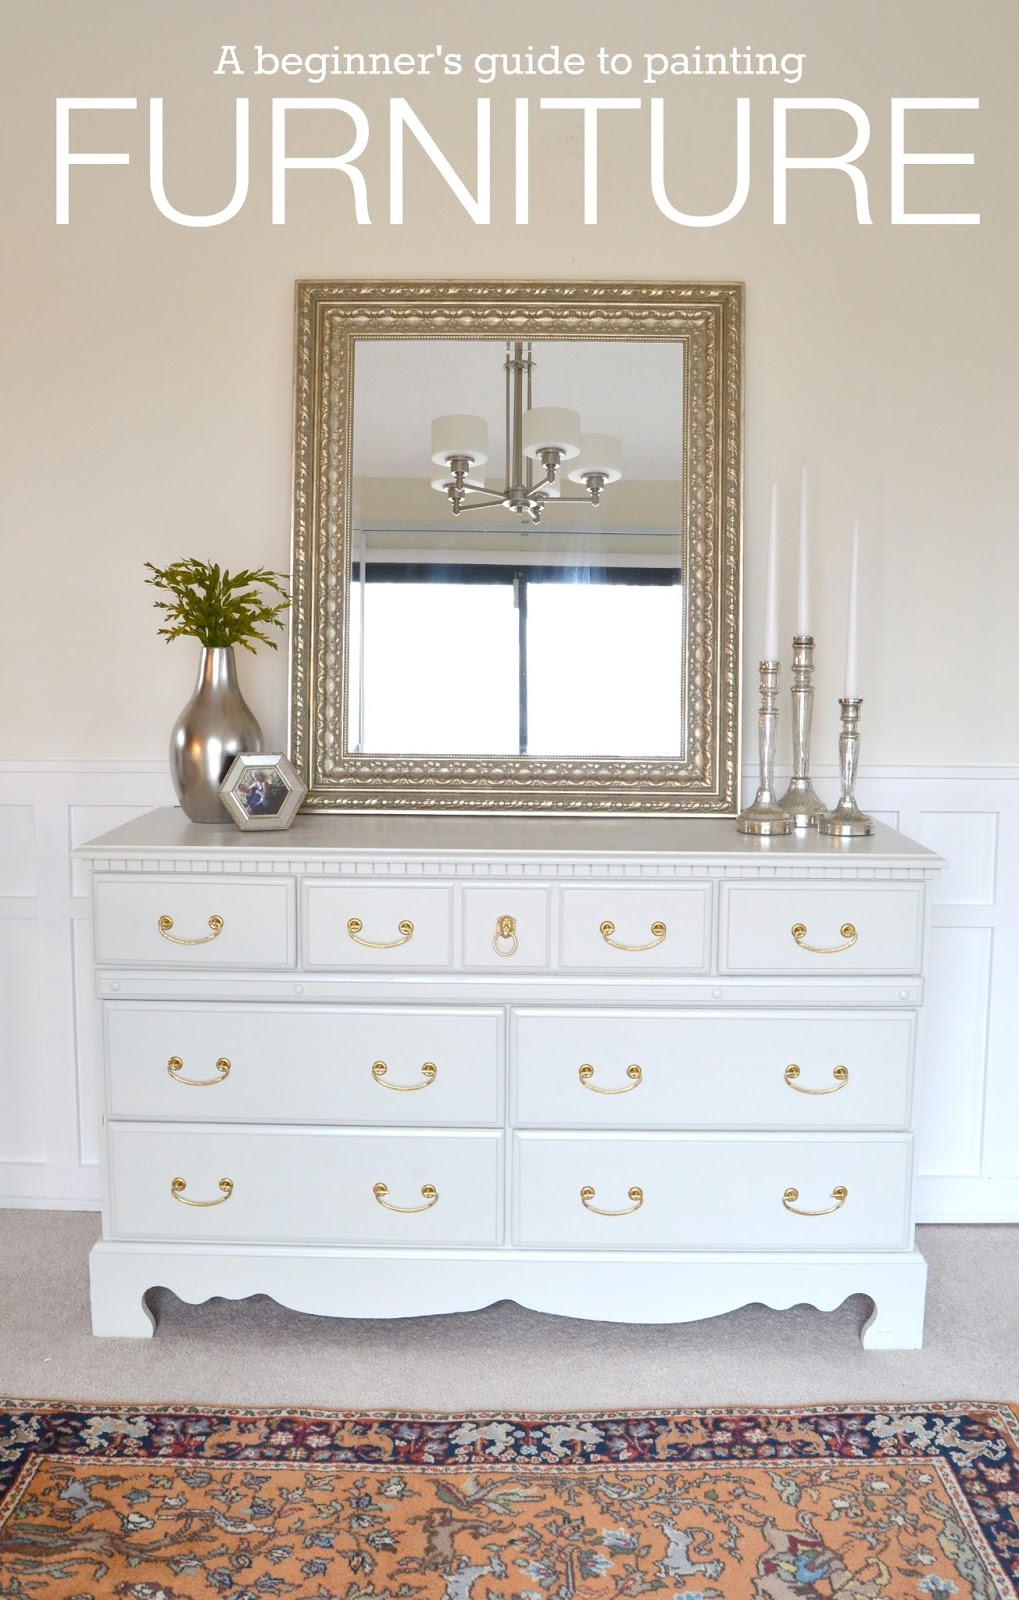 painting furniture whiteLiveLoveDIY How To Paint Furniture why its easier than you think